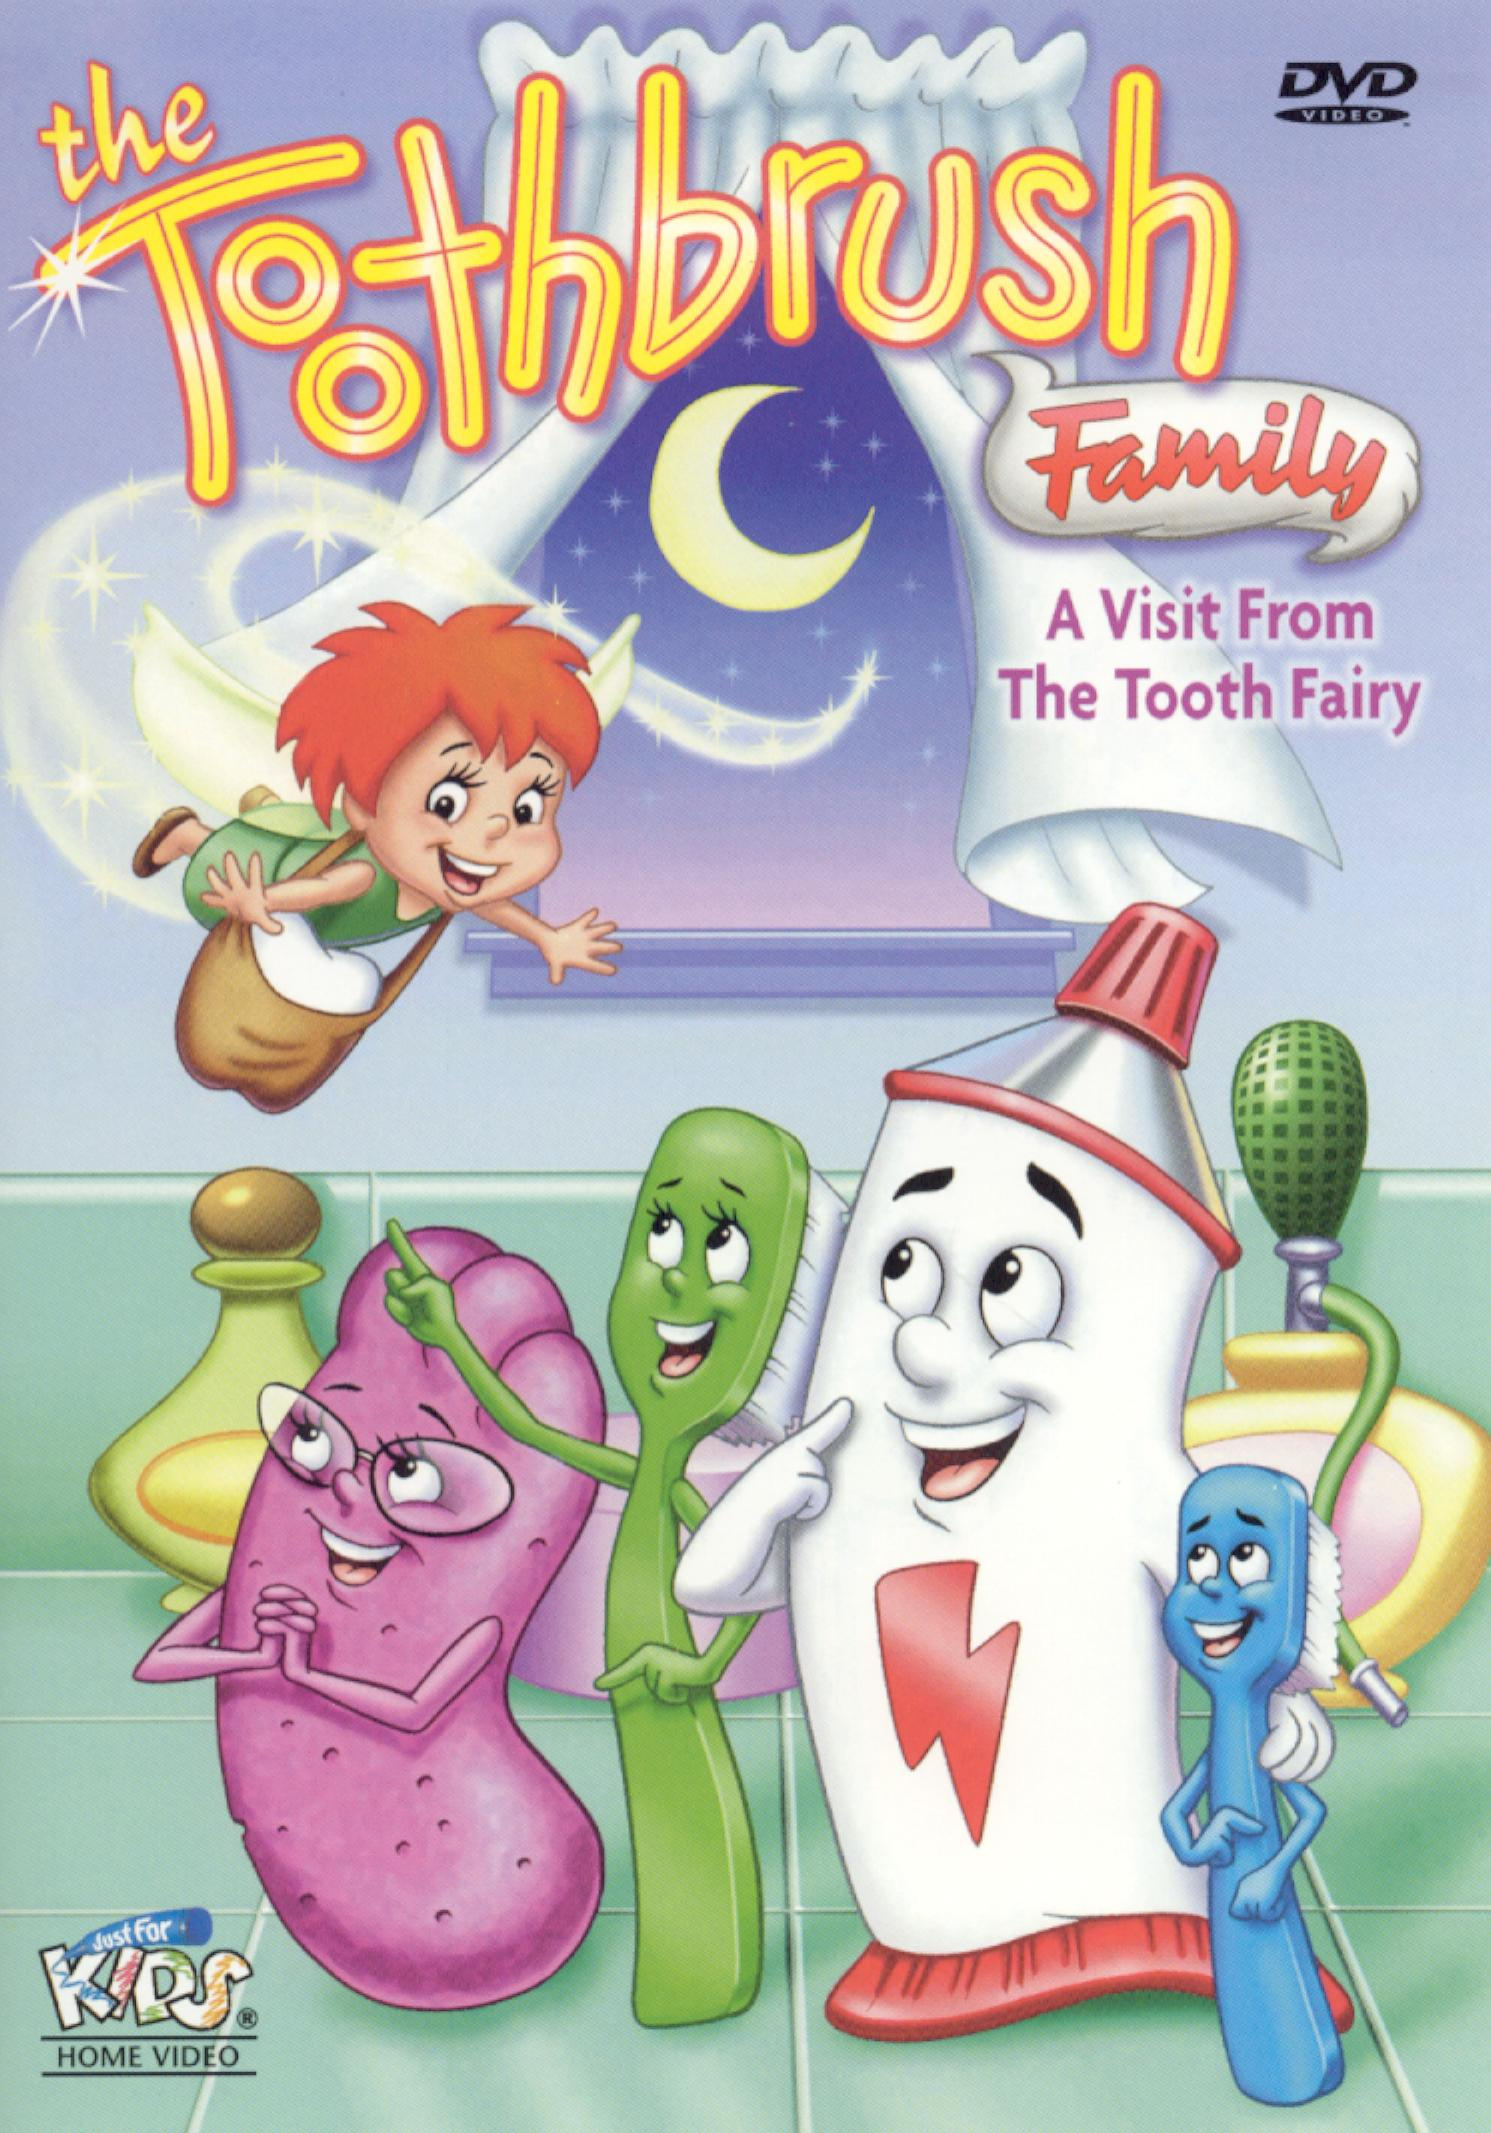 Toothbrush Family: A Visit from the Tooth Fairy